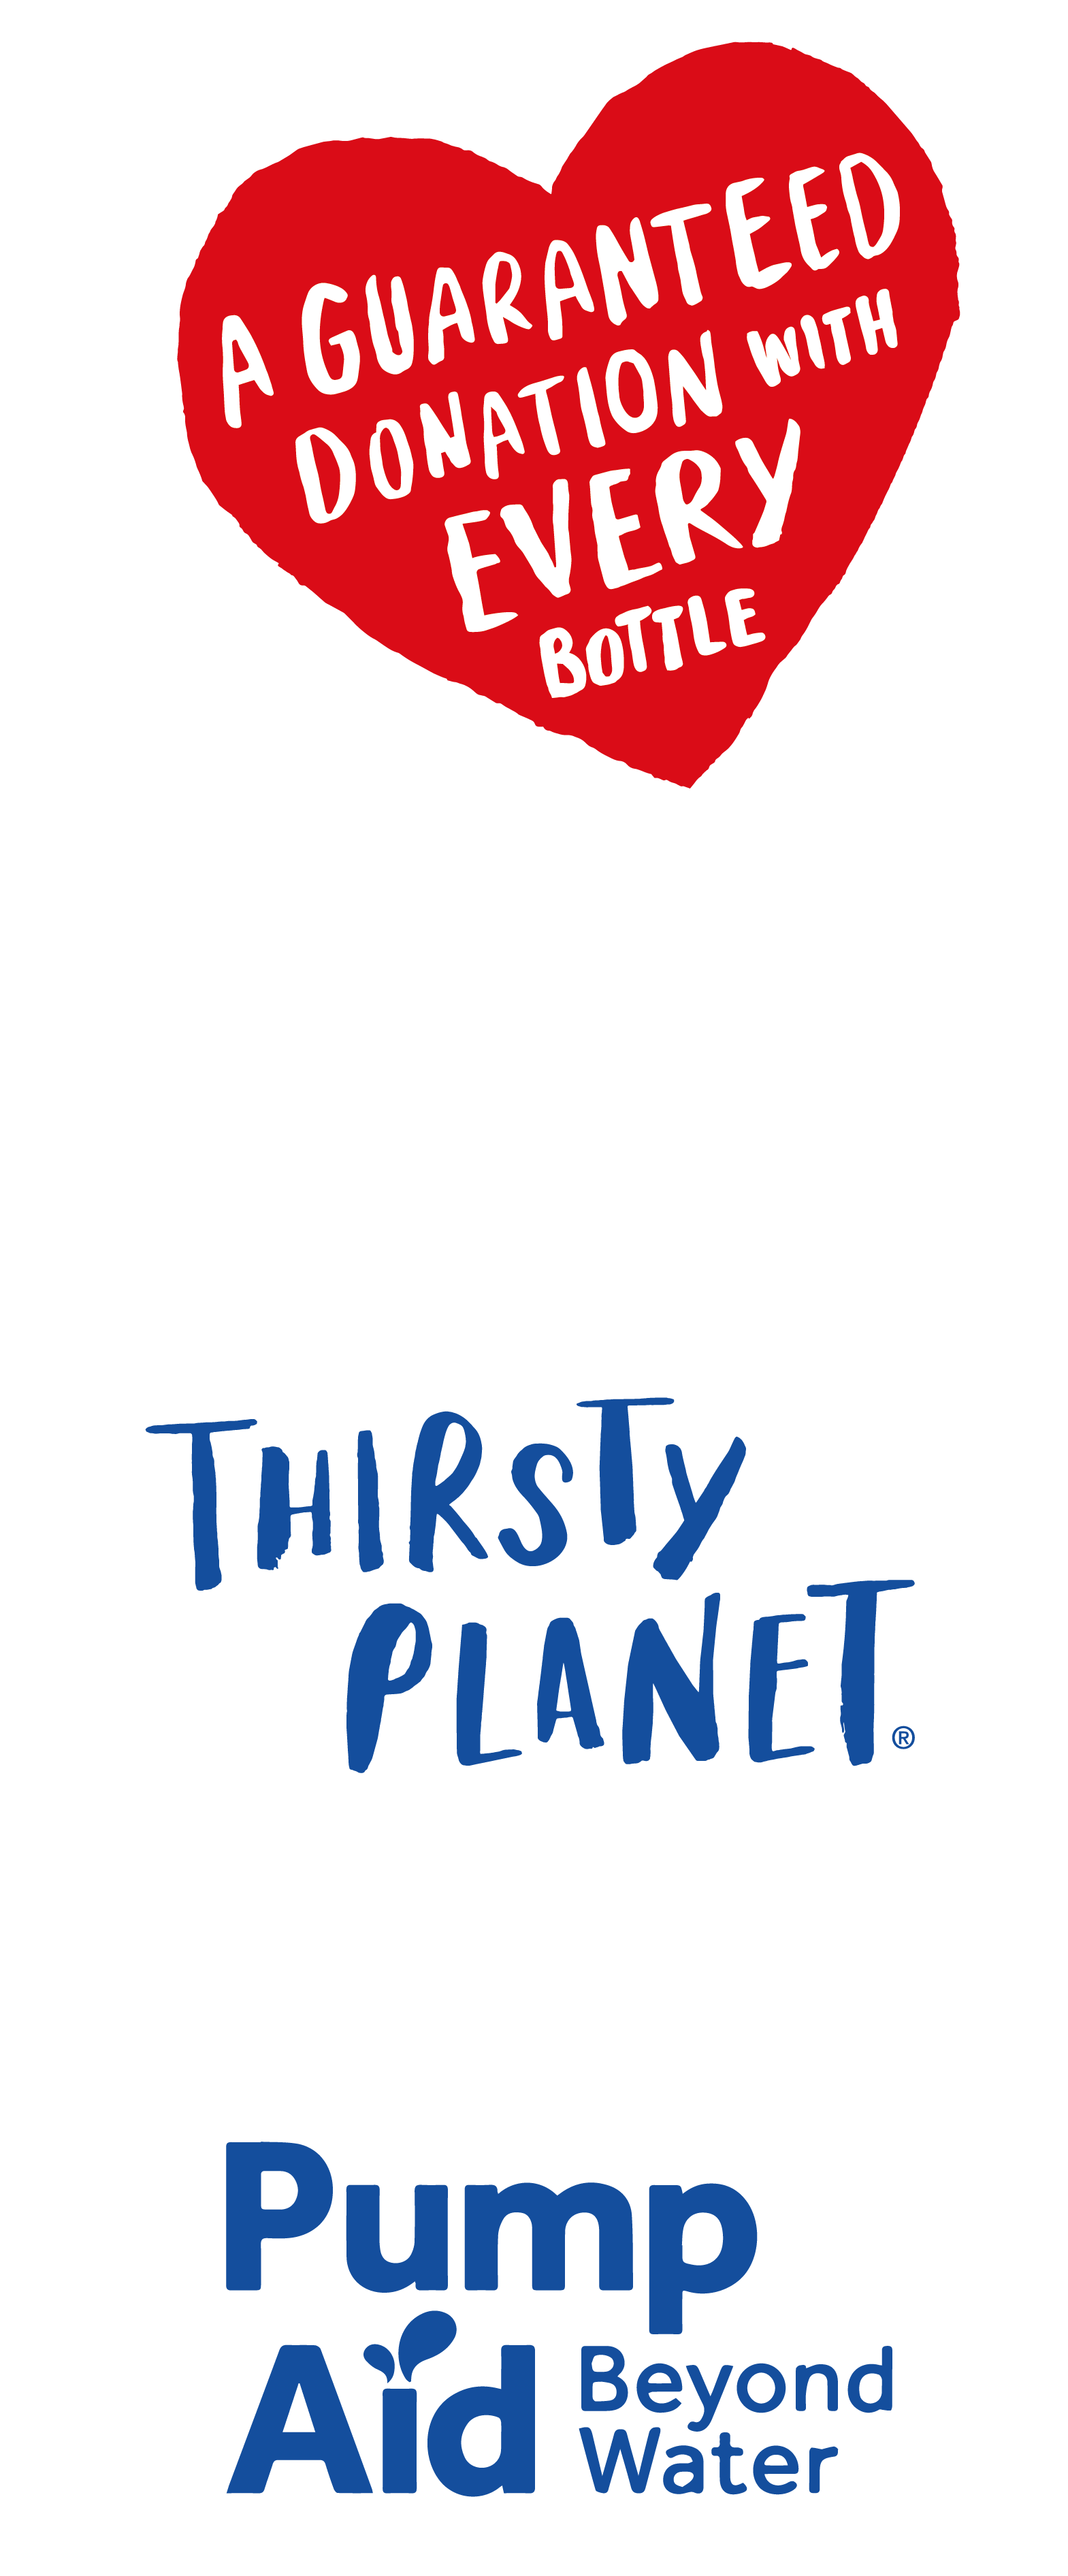 A guaranteed donation with every bottle. 100% of Thirsty Planet donations are paid directly to Pump Aid